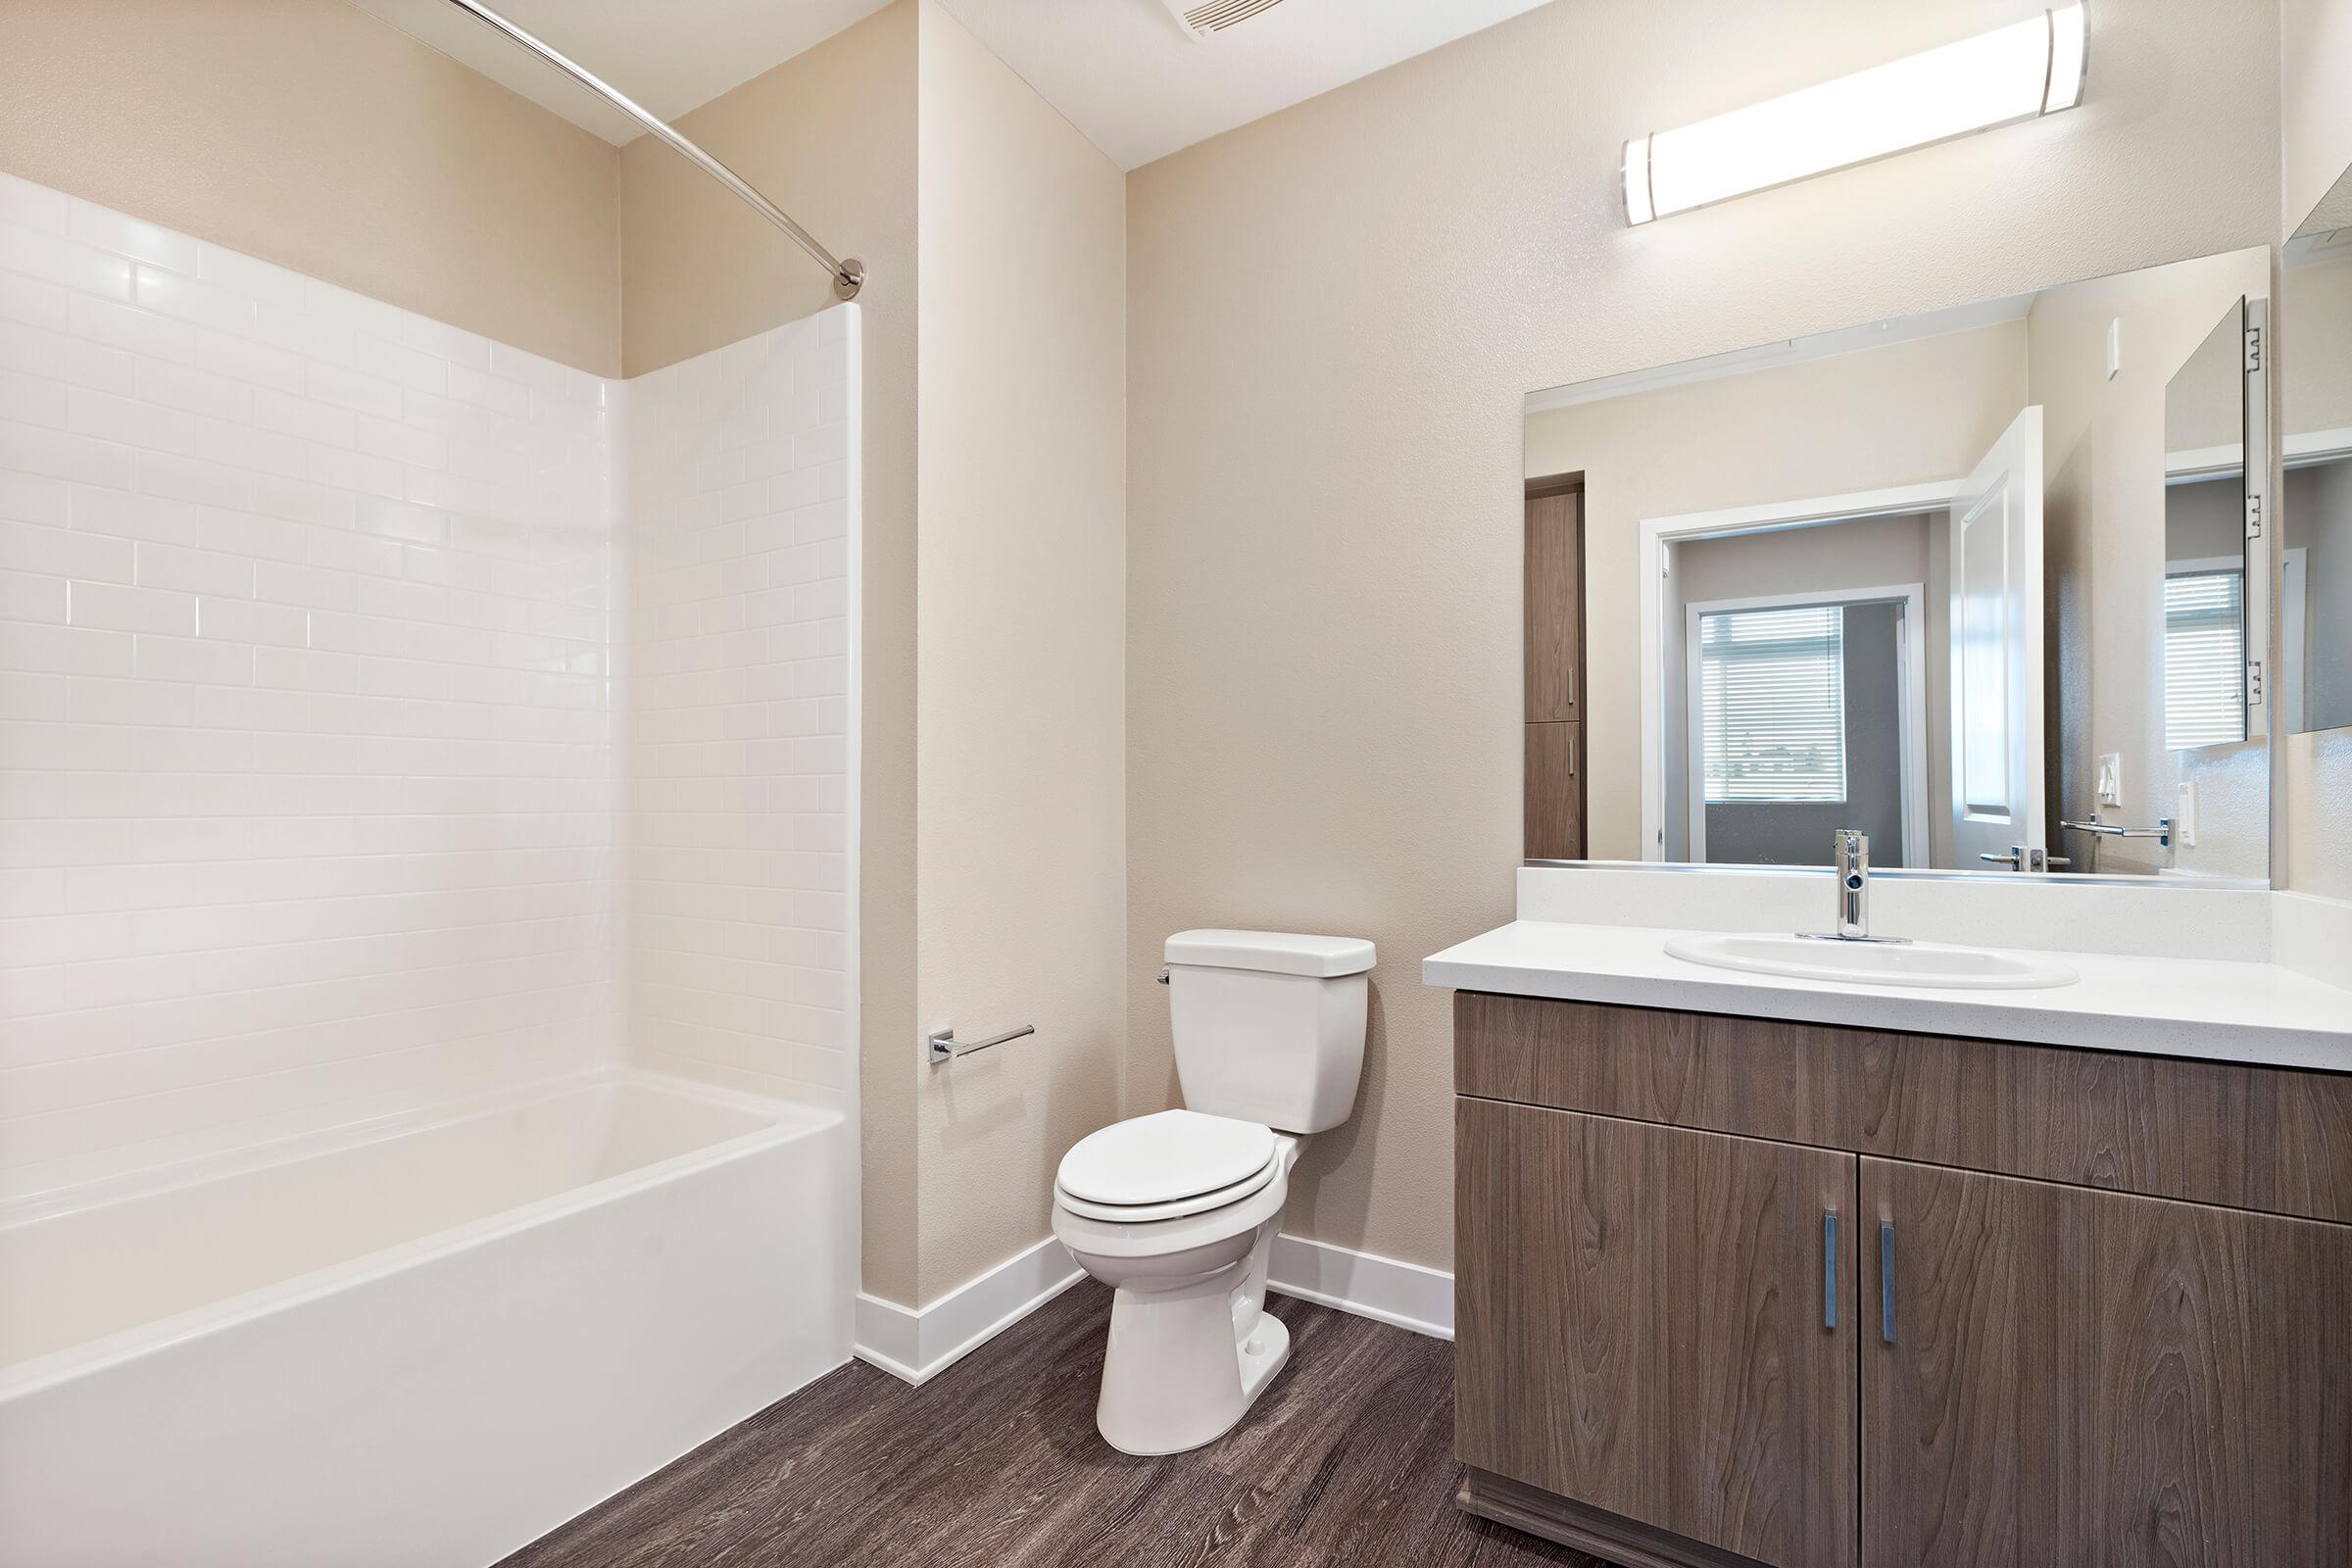 Unfurnished bathroom with wooden cabinets